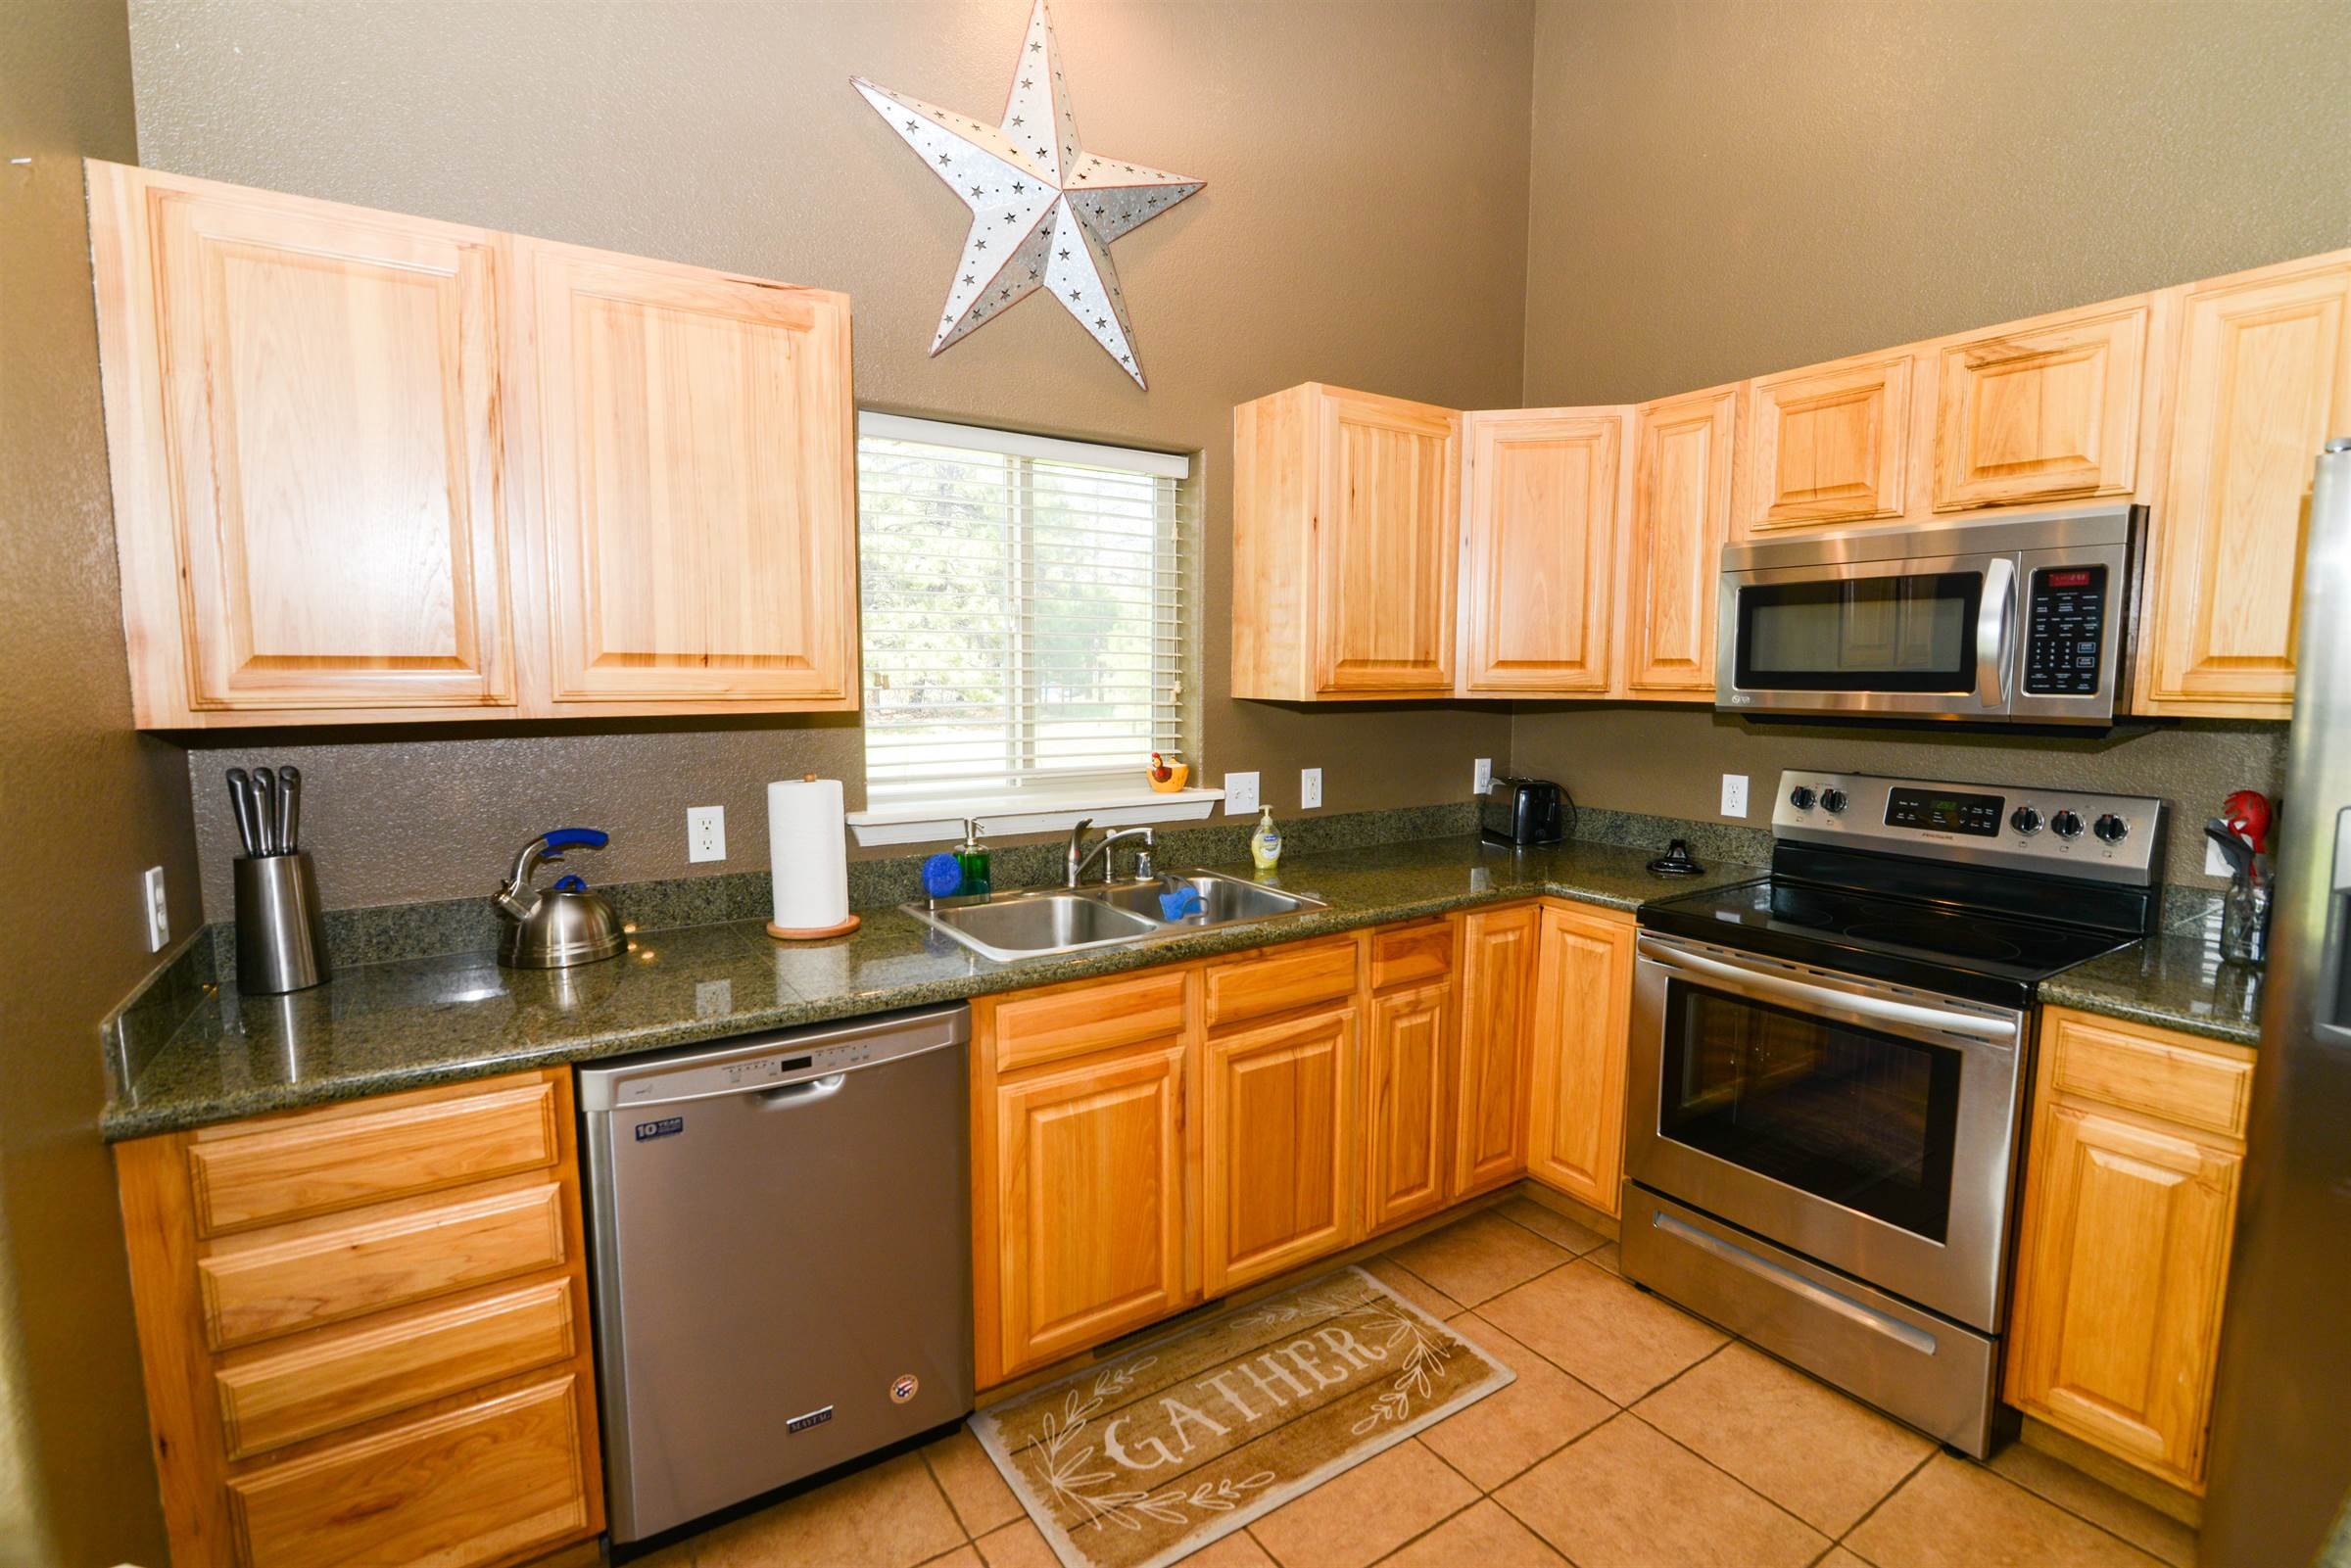 Chipper's Abode, #35 Chipper Ct - Short Term, Pagosa Springs, CO 81147